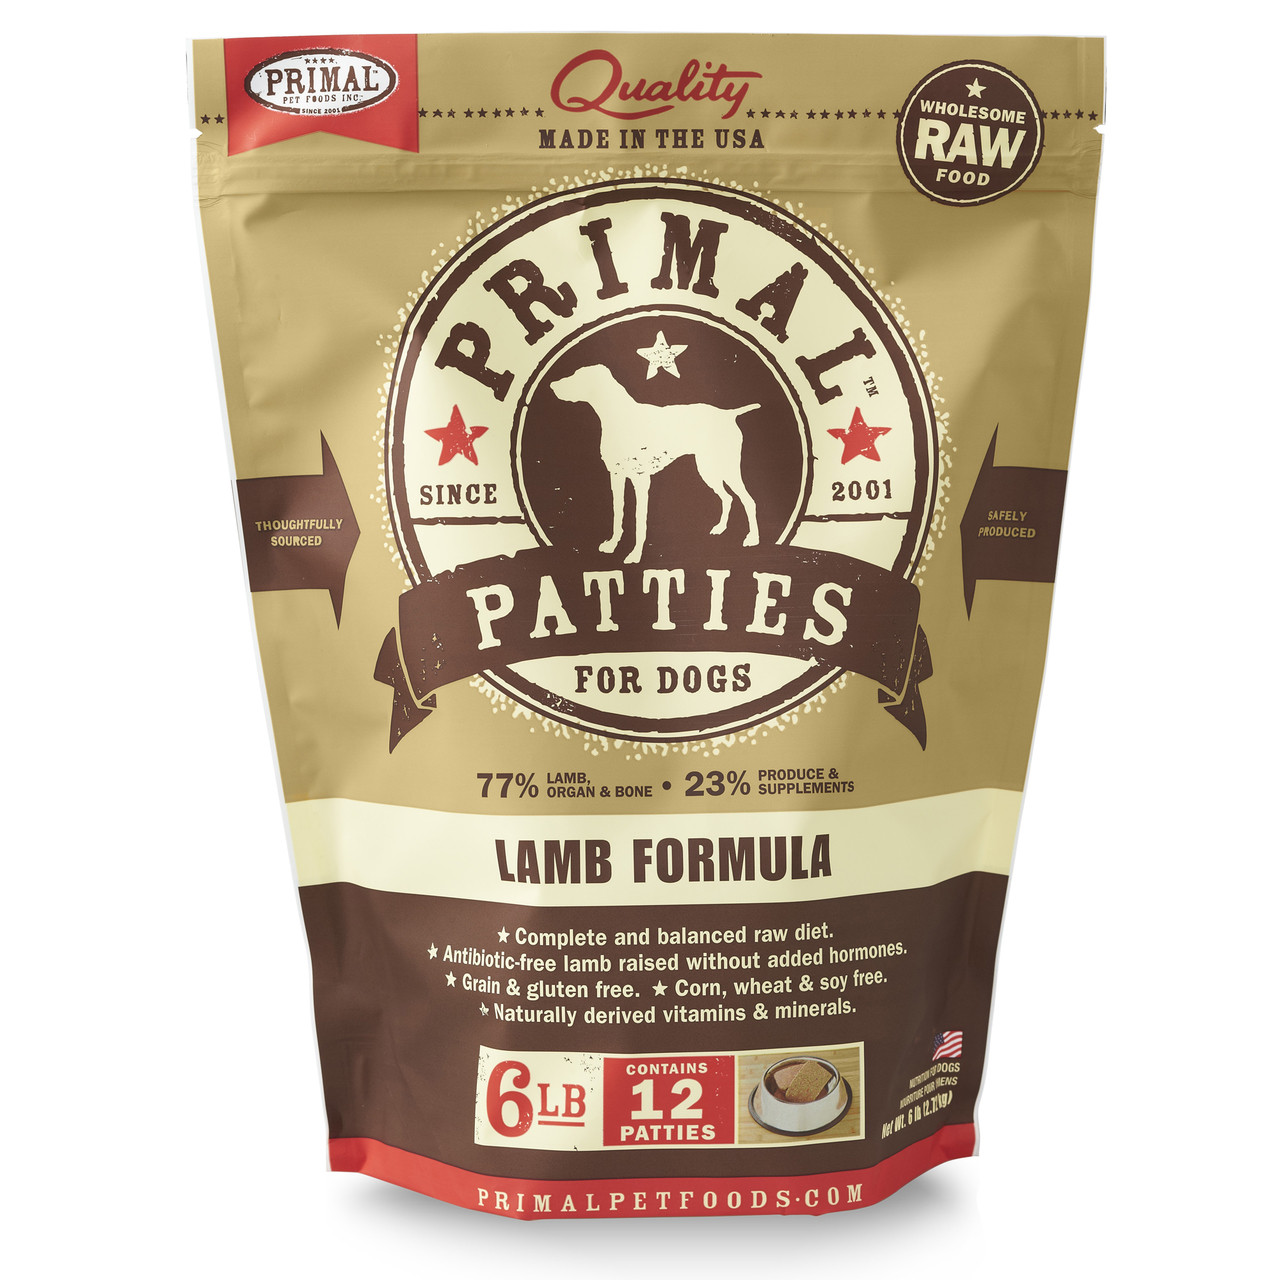 Primal Raw Frozen Canine Patties Lamb Formula Dog Food